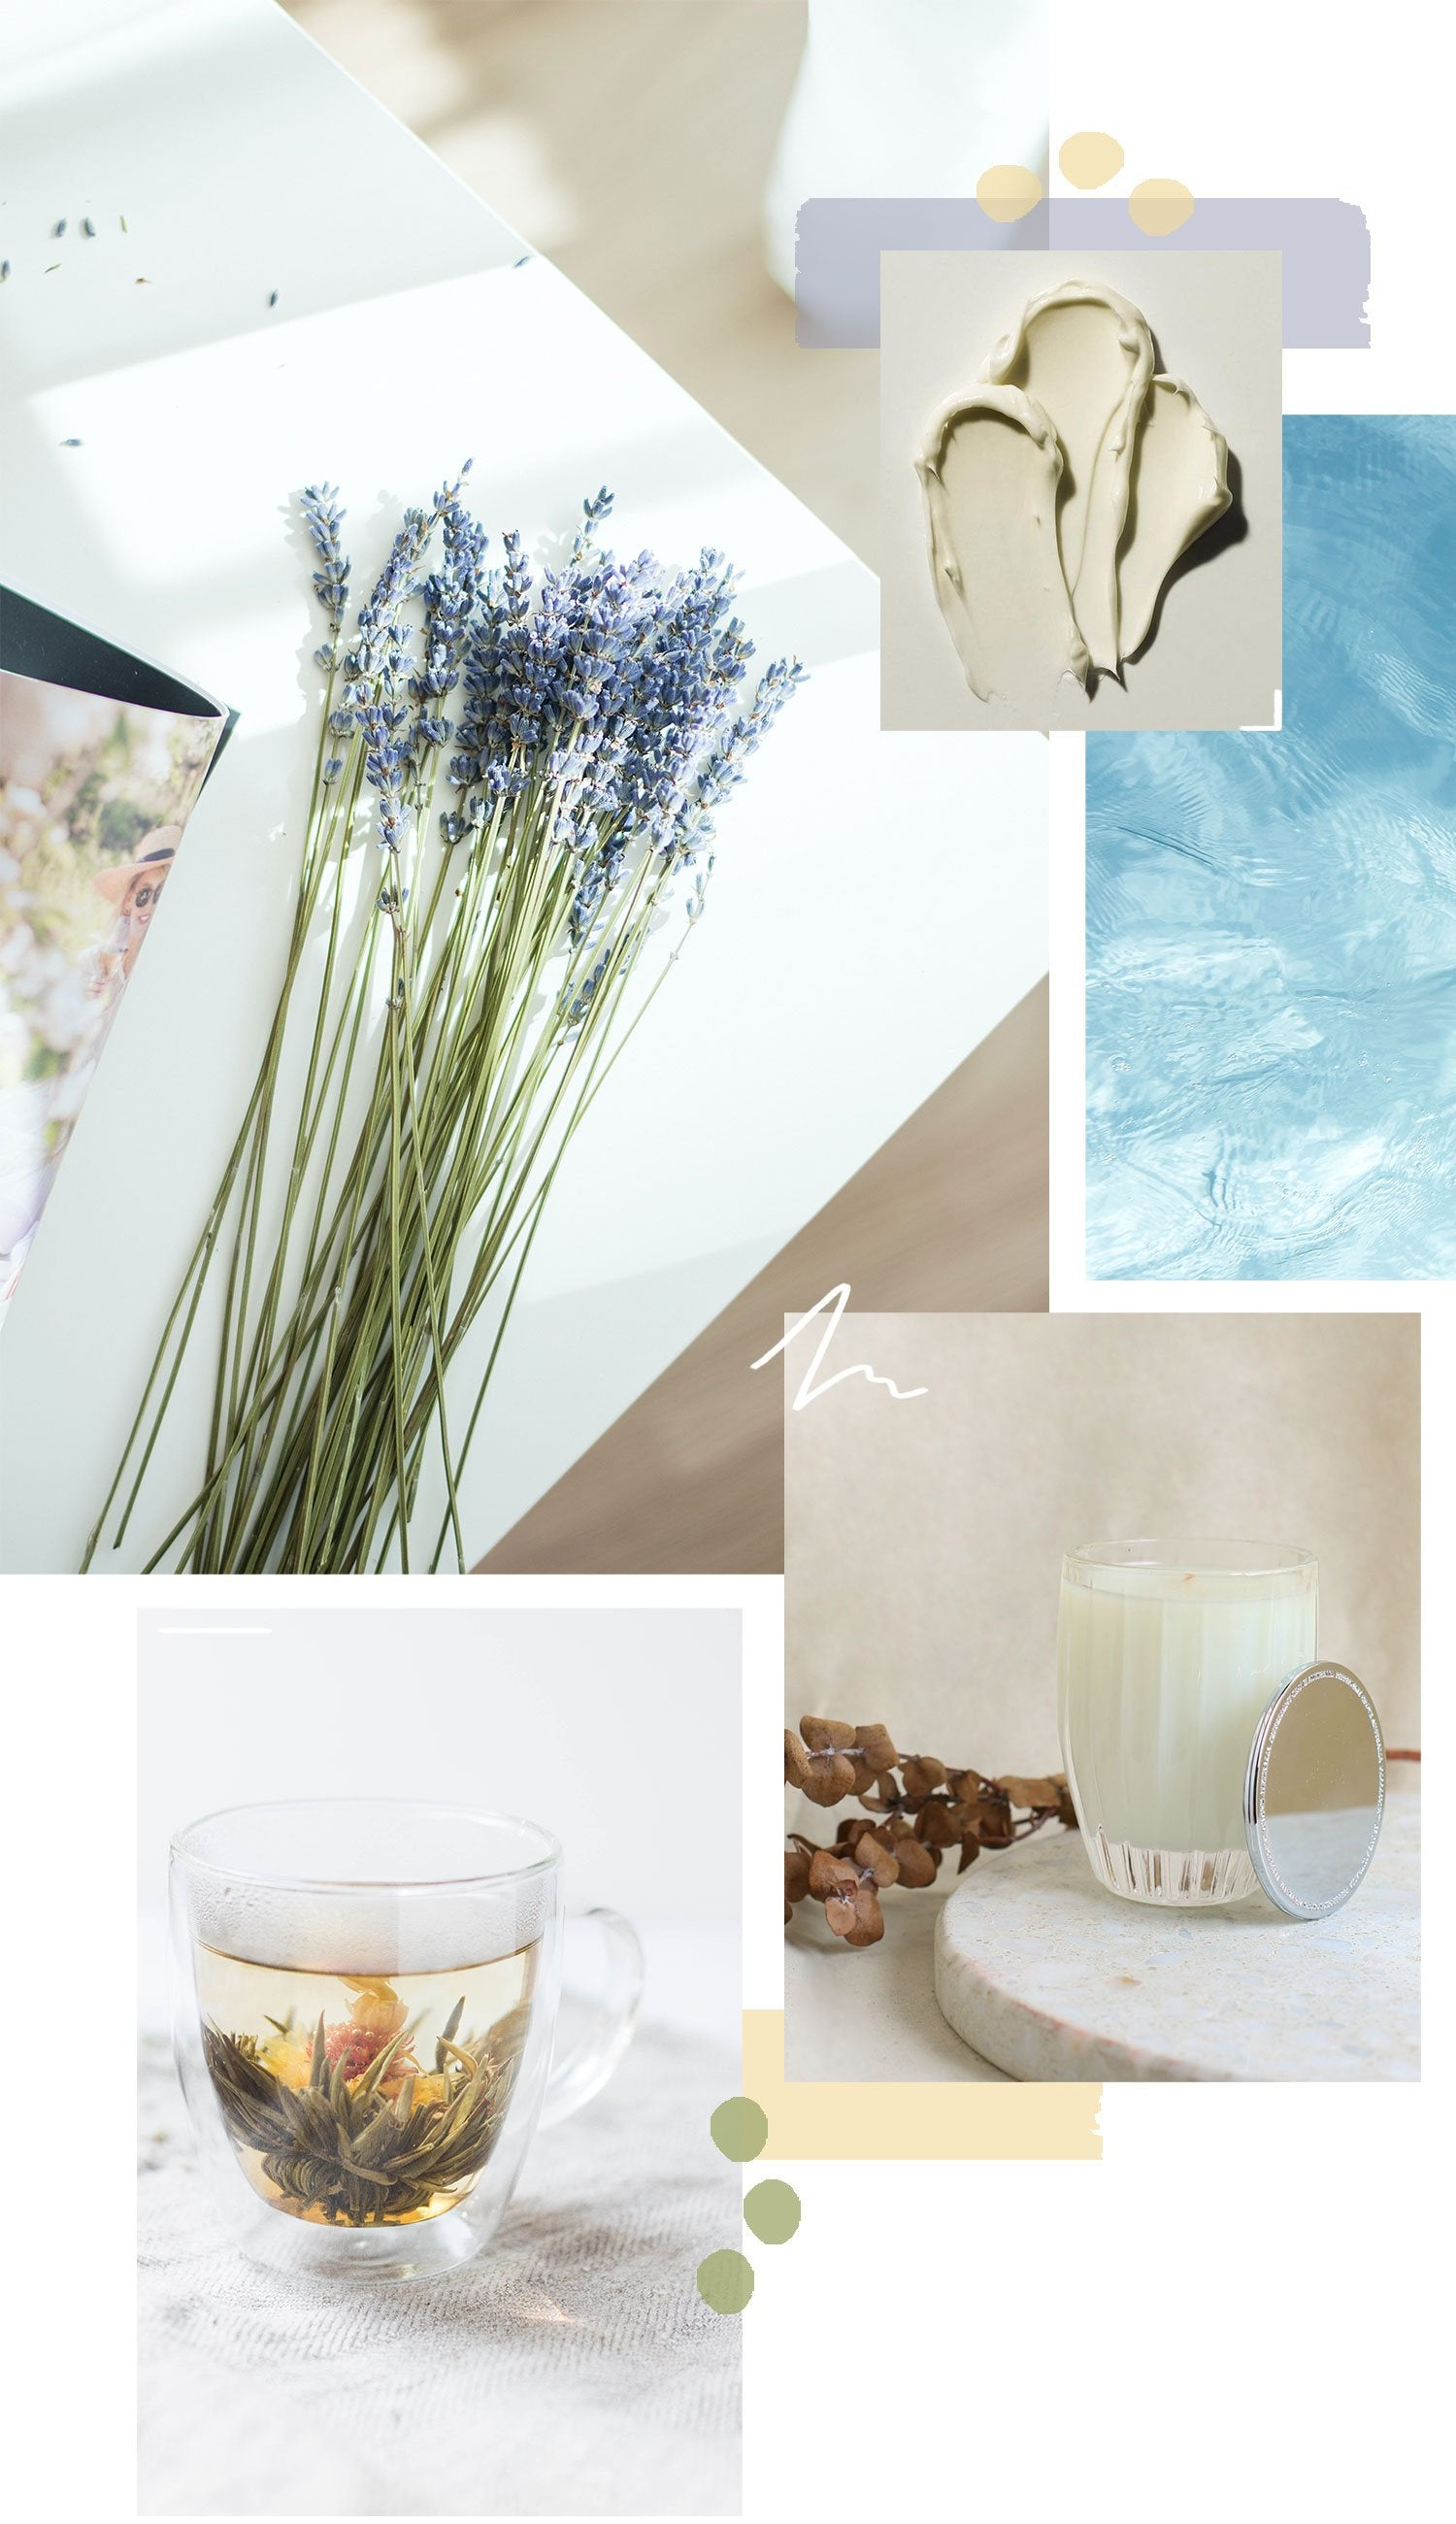 Relaxing spa mood board